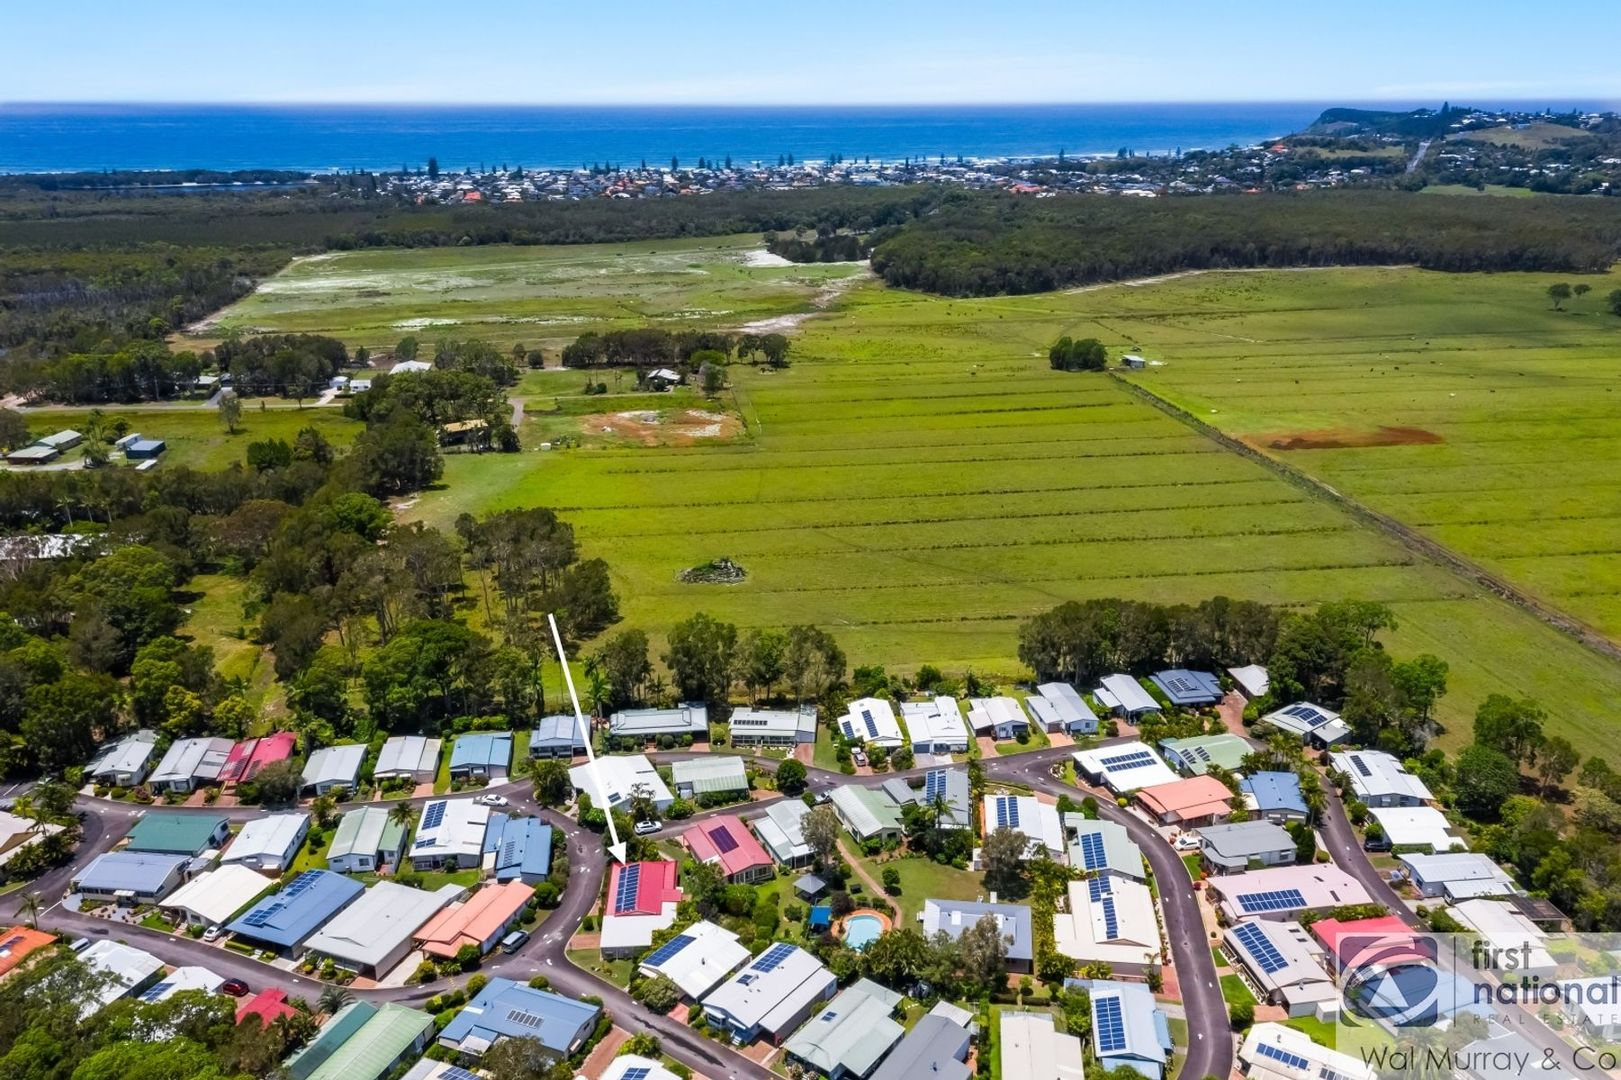 73/502 Ross Lane, Lennox Head NSW 2478, Image 1